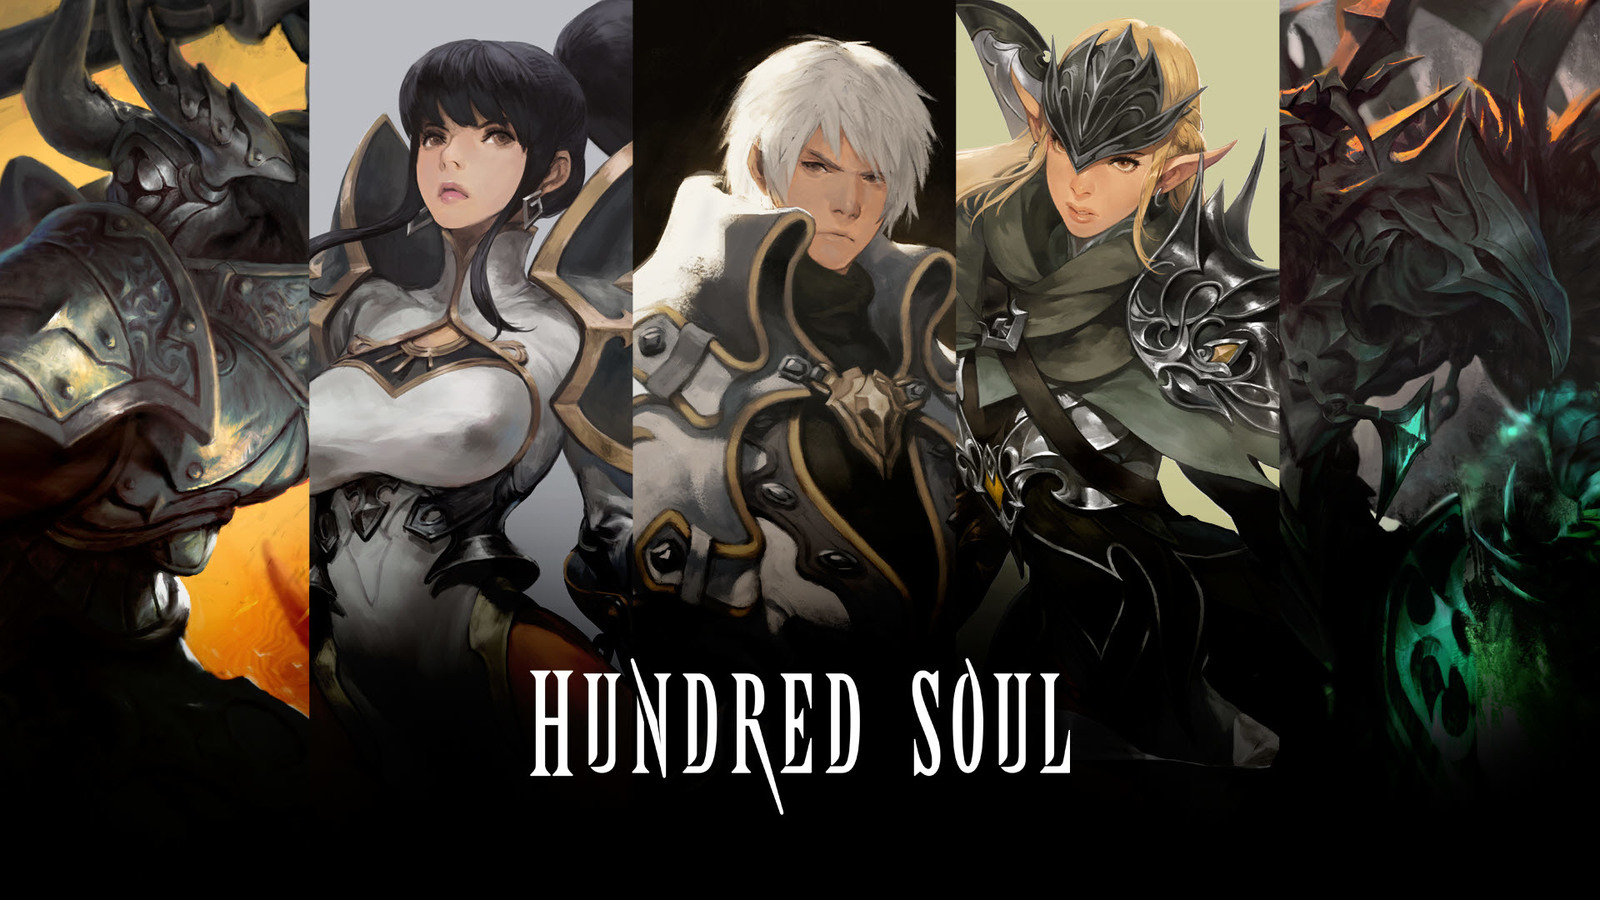 Hundred Soul: Last Savior・Tesztlabor